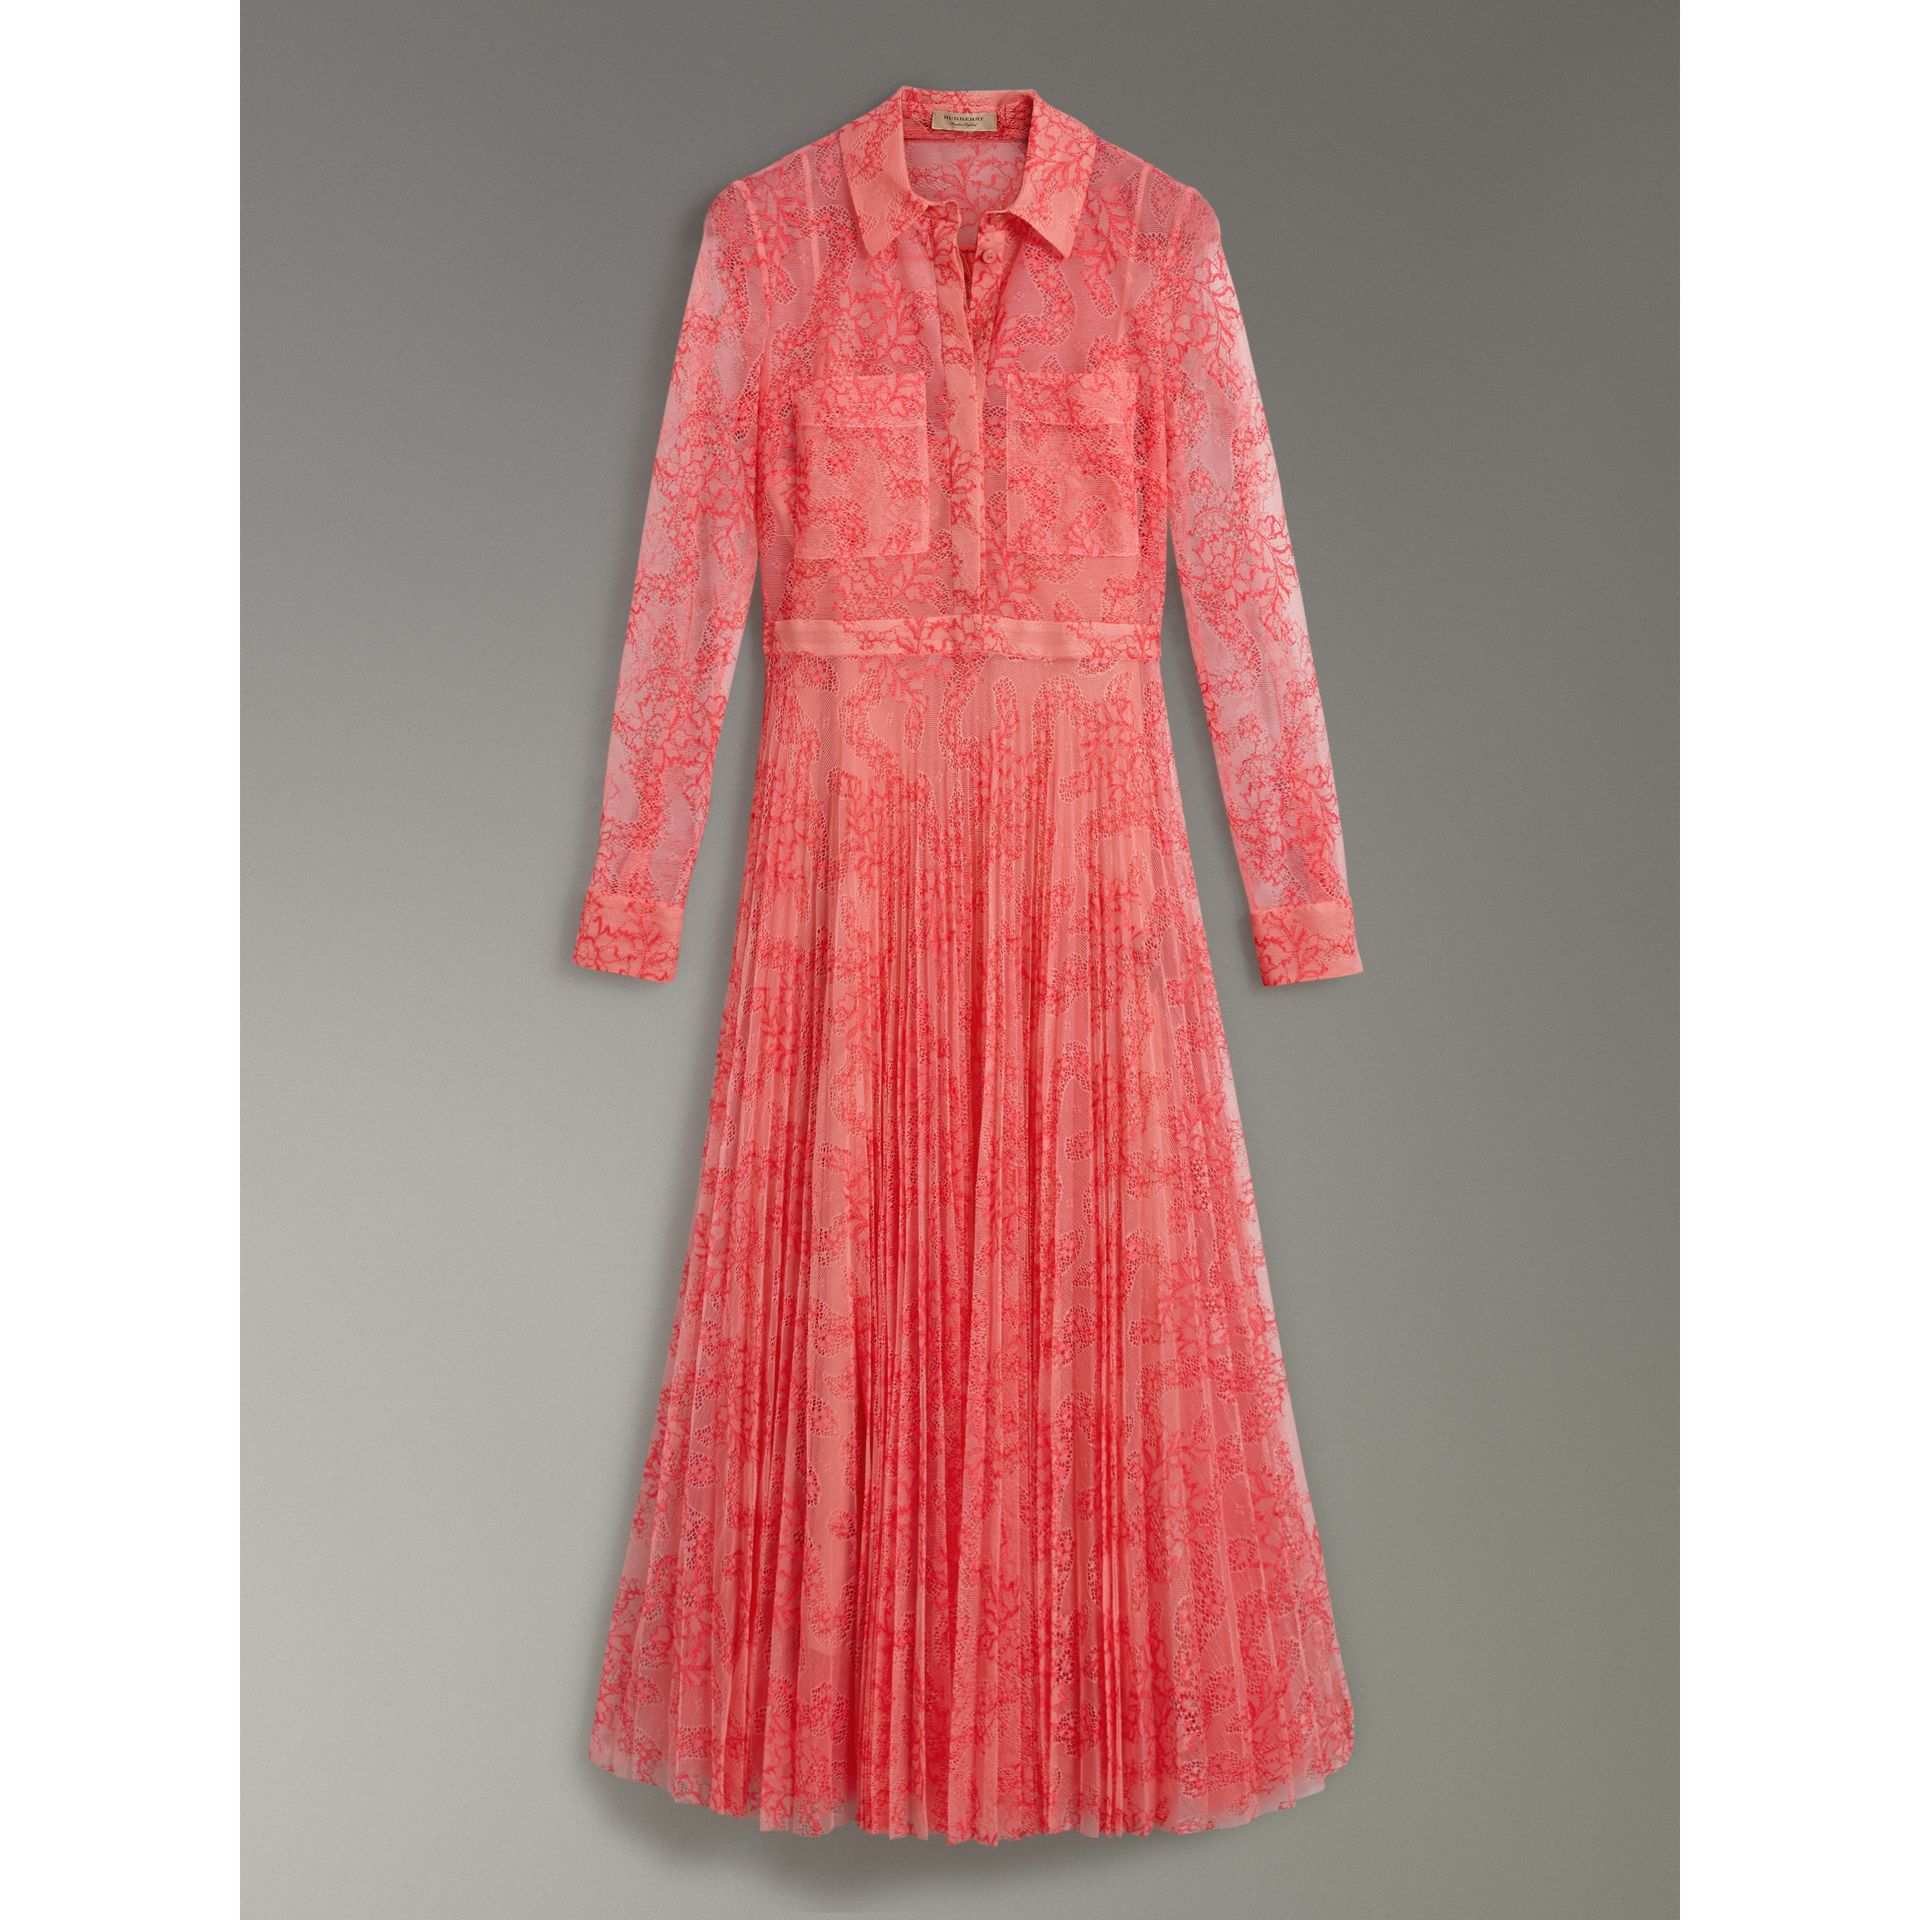 Pleated Lace Dress in Pale Apricot/coral - Women | Burberry United Kingdom - gallery image 3